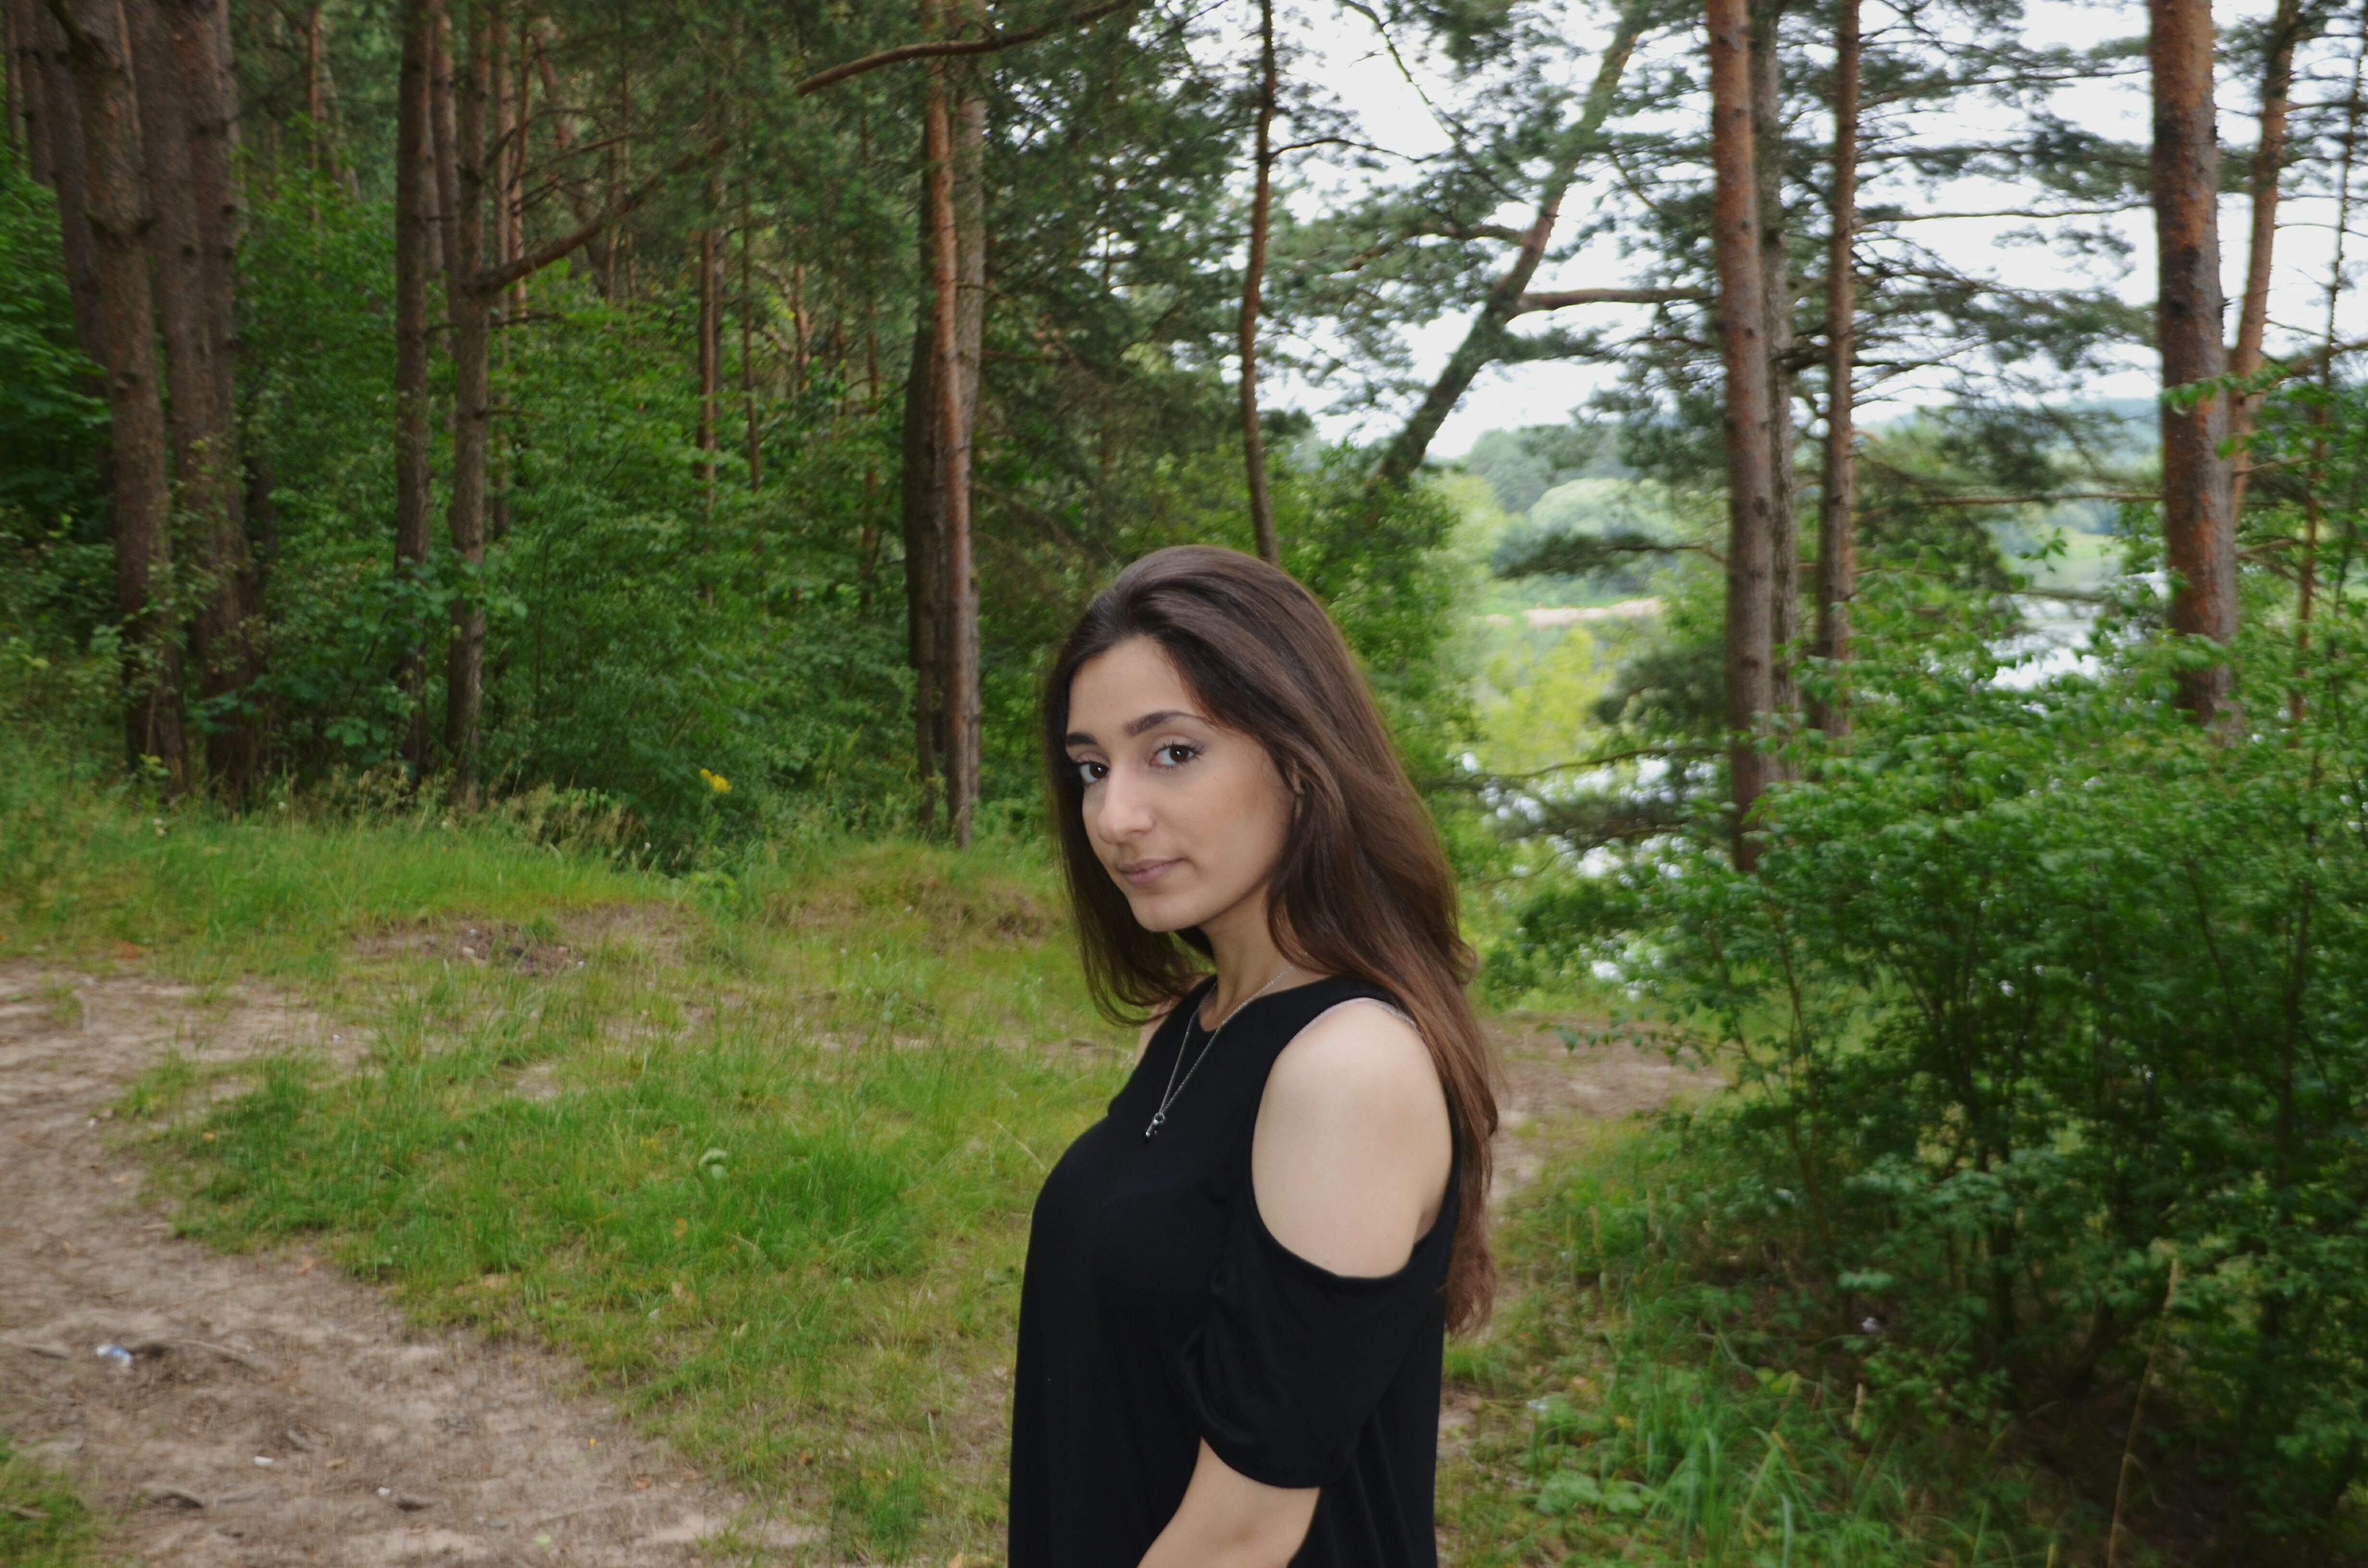 young adult, real people, young women, one person, leisure activity, standing, tree, lifestyles, nature, beautiful woman, outdoors, forest, looking at camera, day, portrait, people